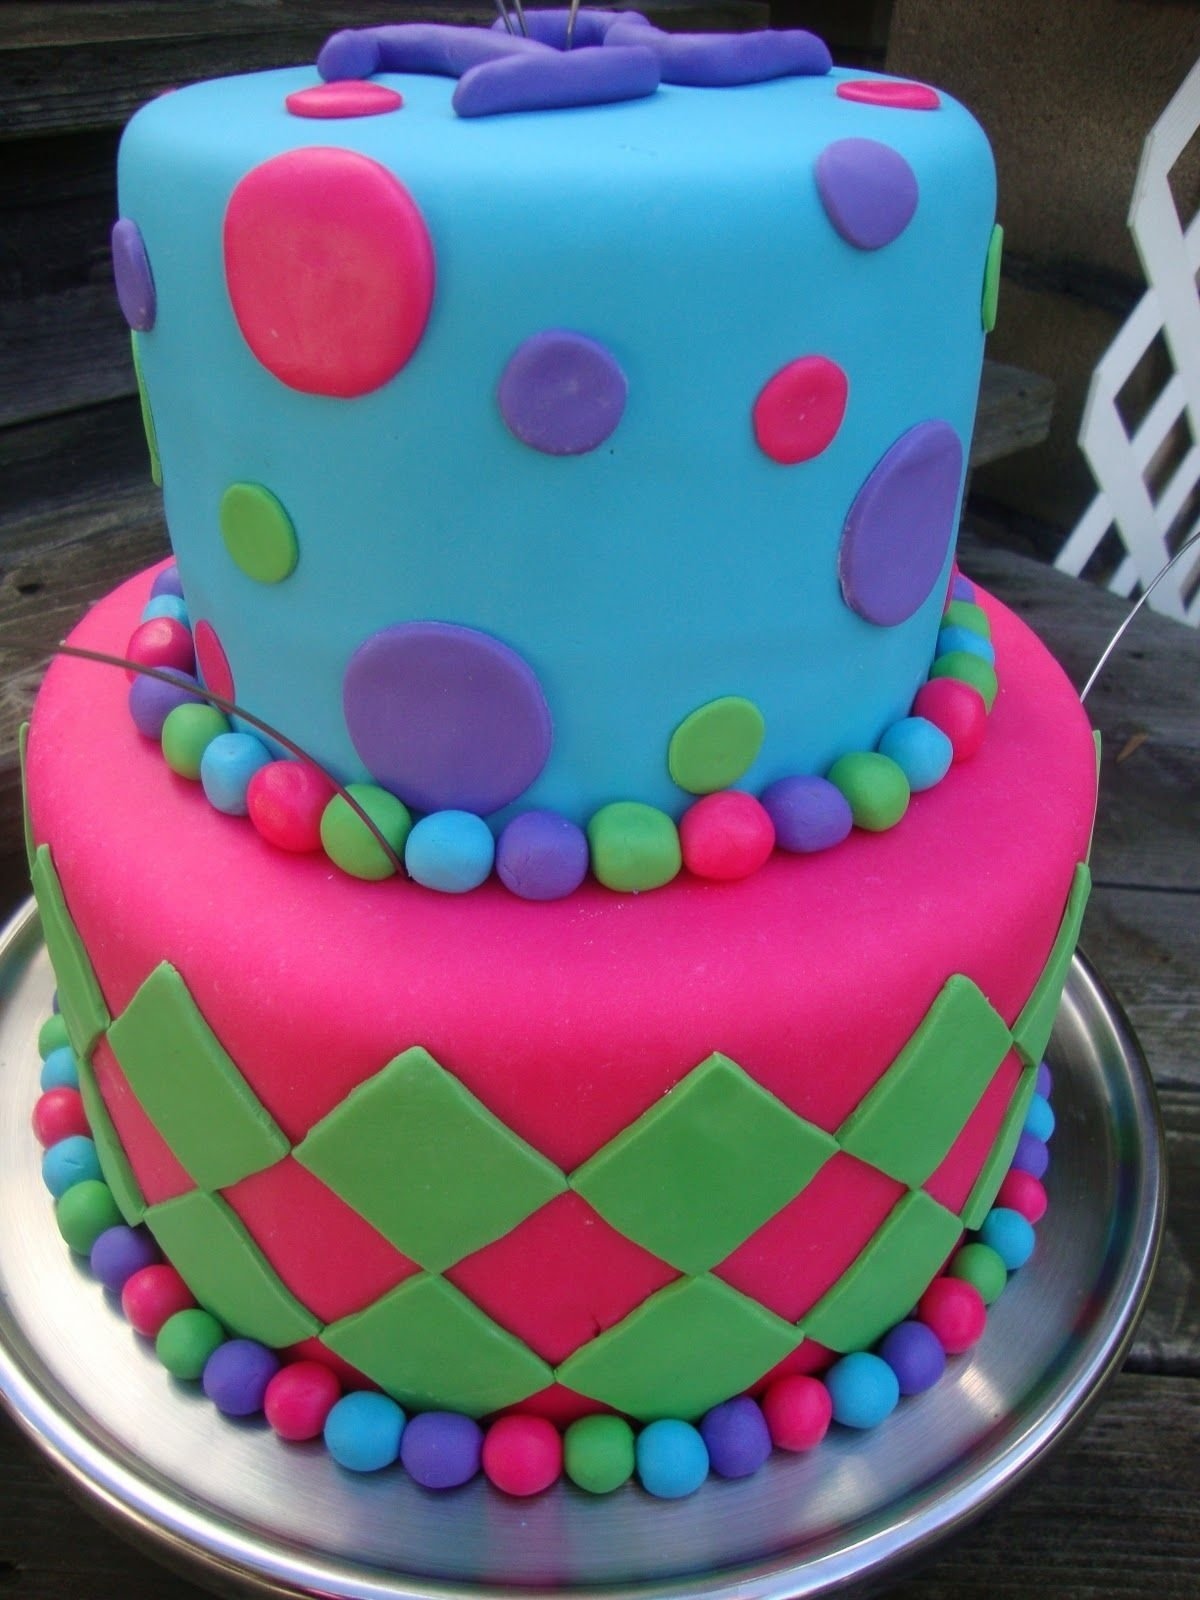 cool birthday cake | made this cake for a 12 year old girls birthday